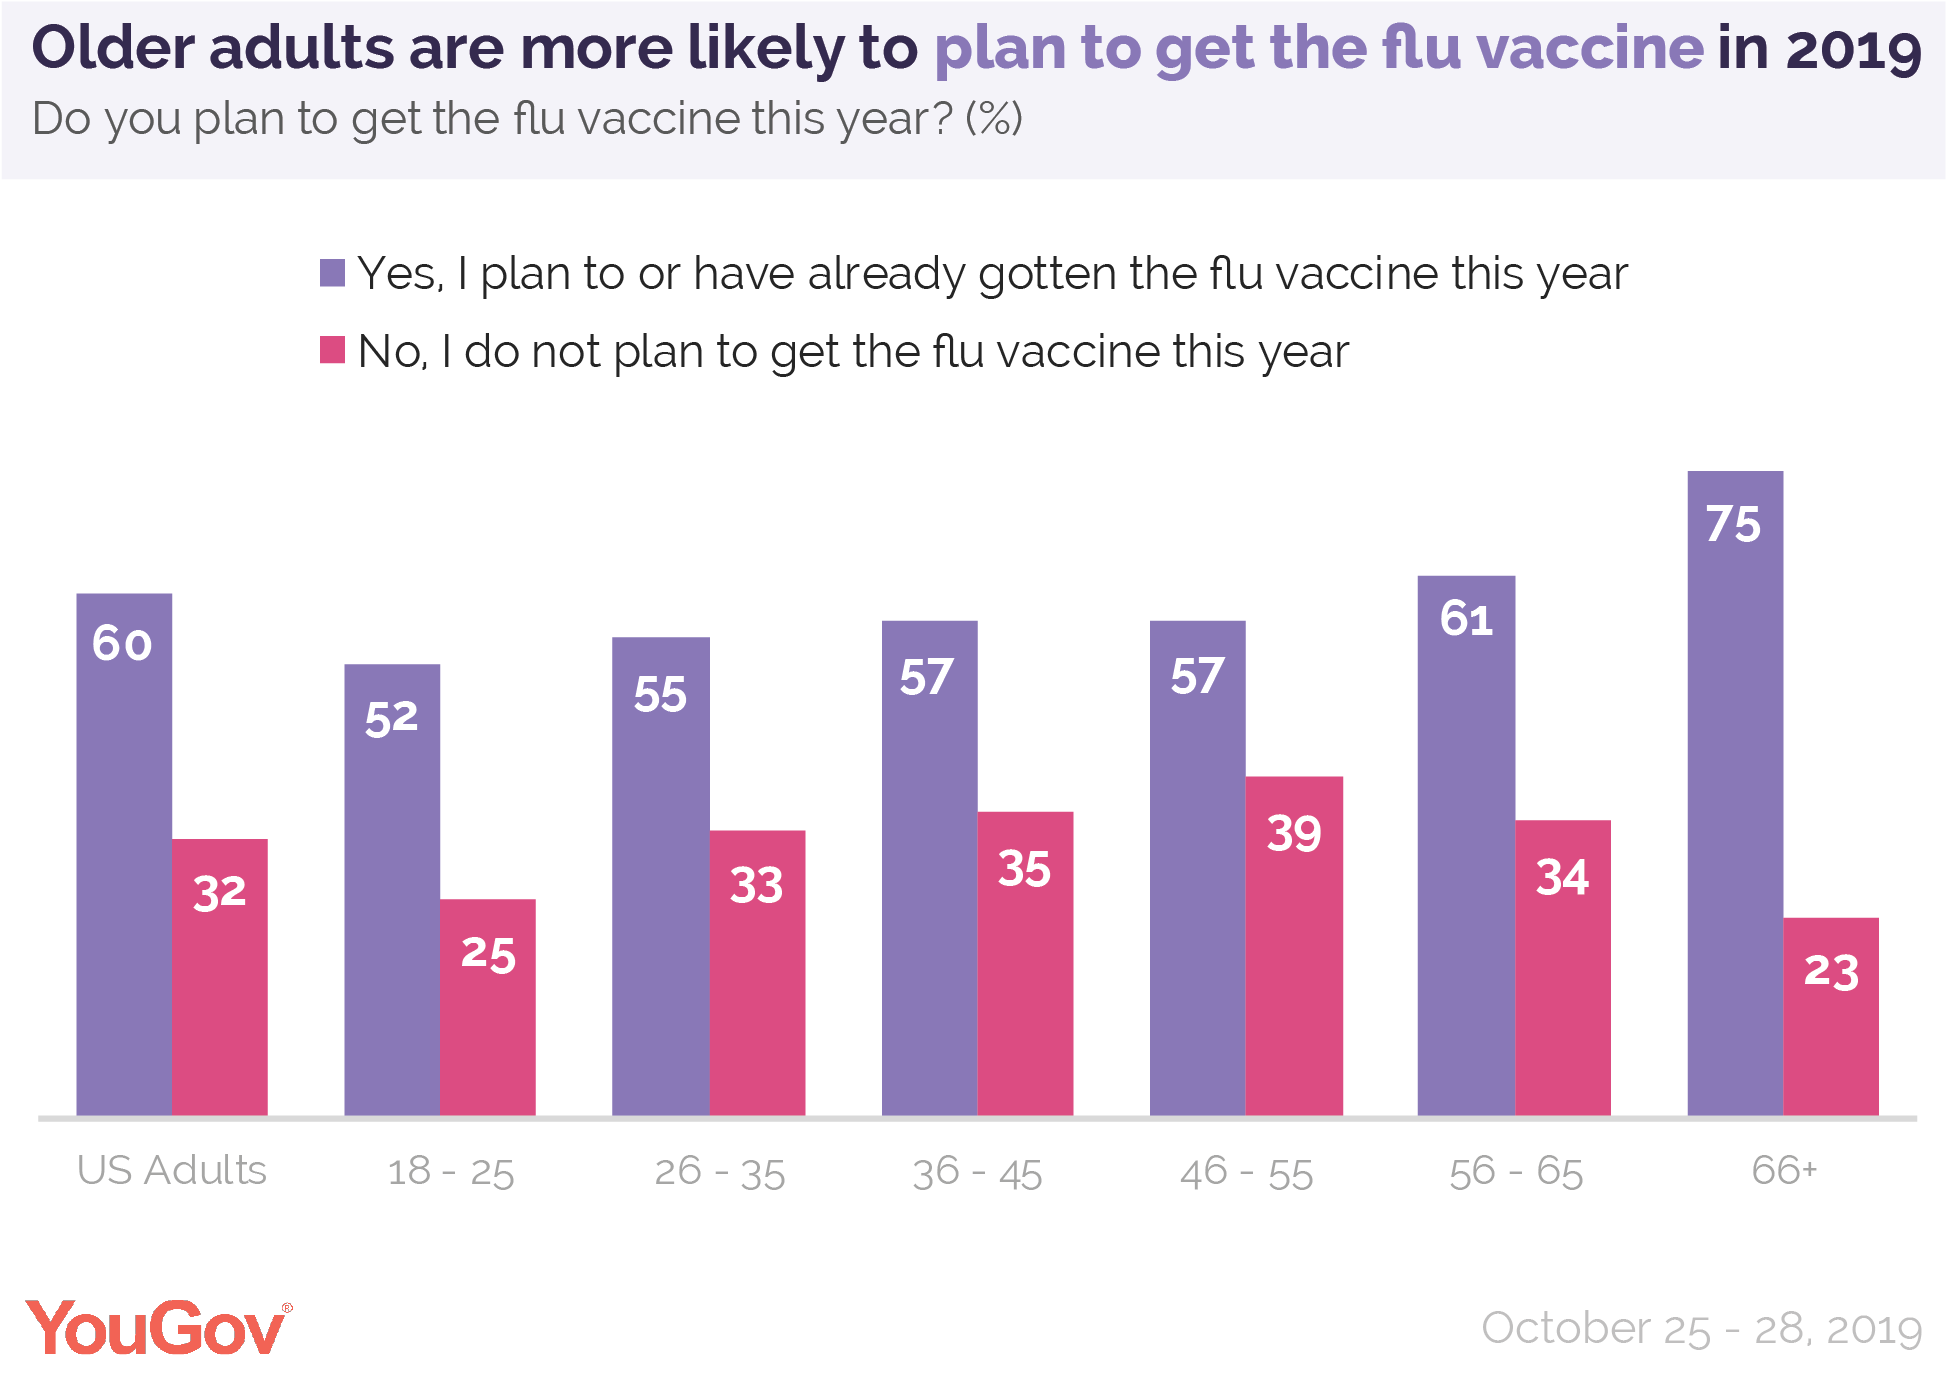 Older adults are more likely to plan to get the flu vaccine in 2019